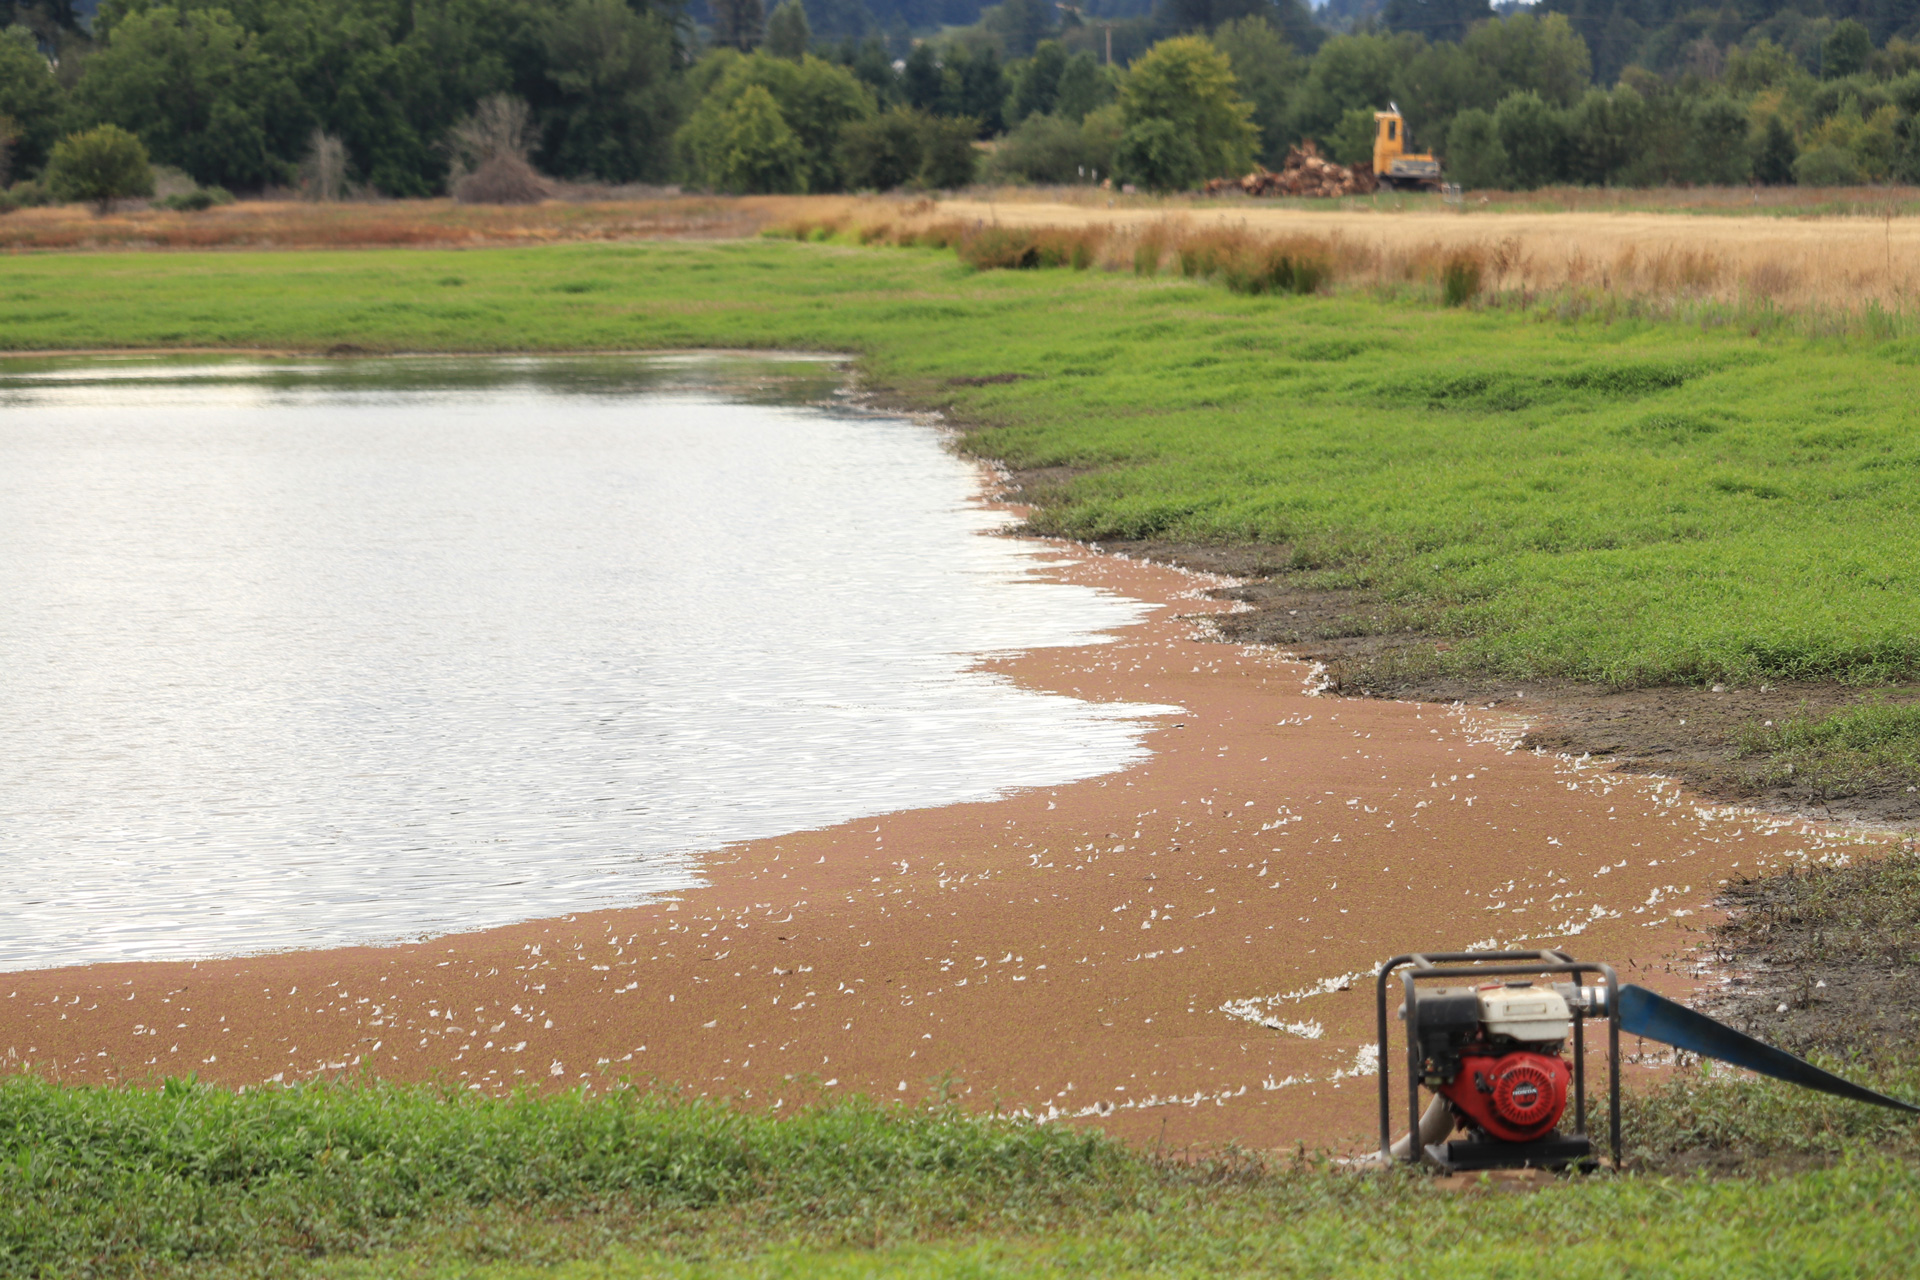 A small pump speeds up the natural drying of the 2S wetland.